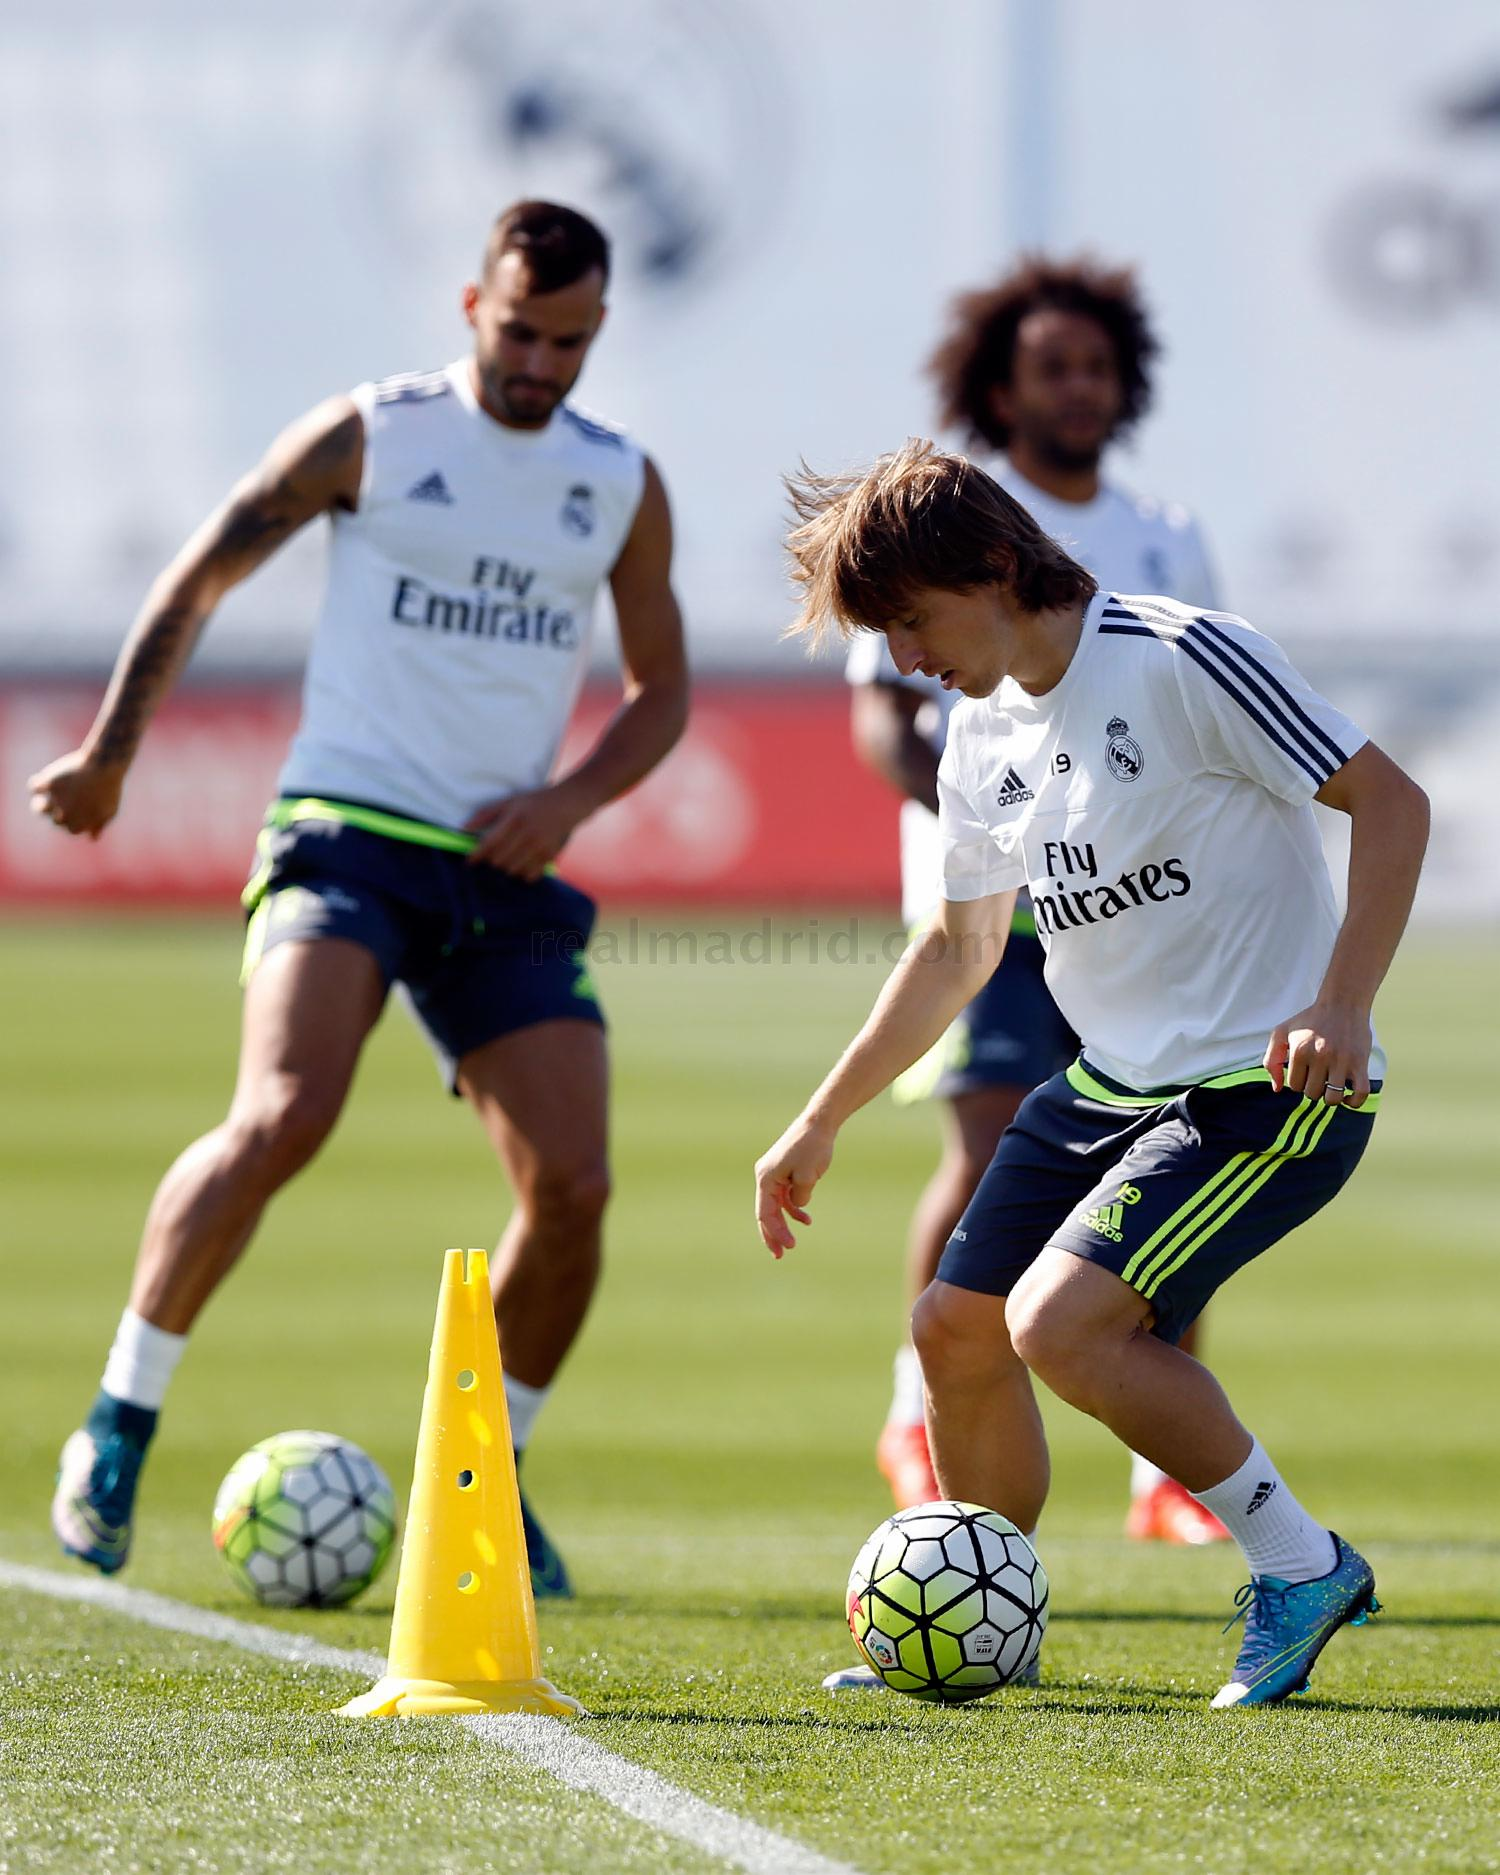 Real Madrid - Entrenamiento del Real Madrid - 01-10-2015